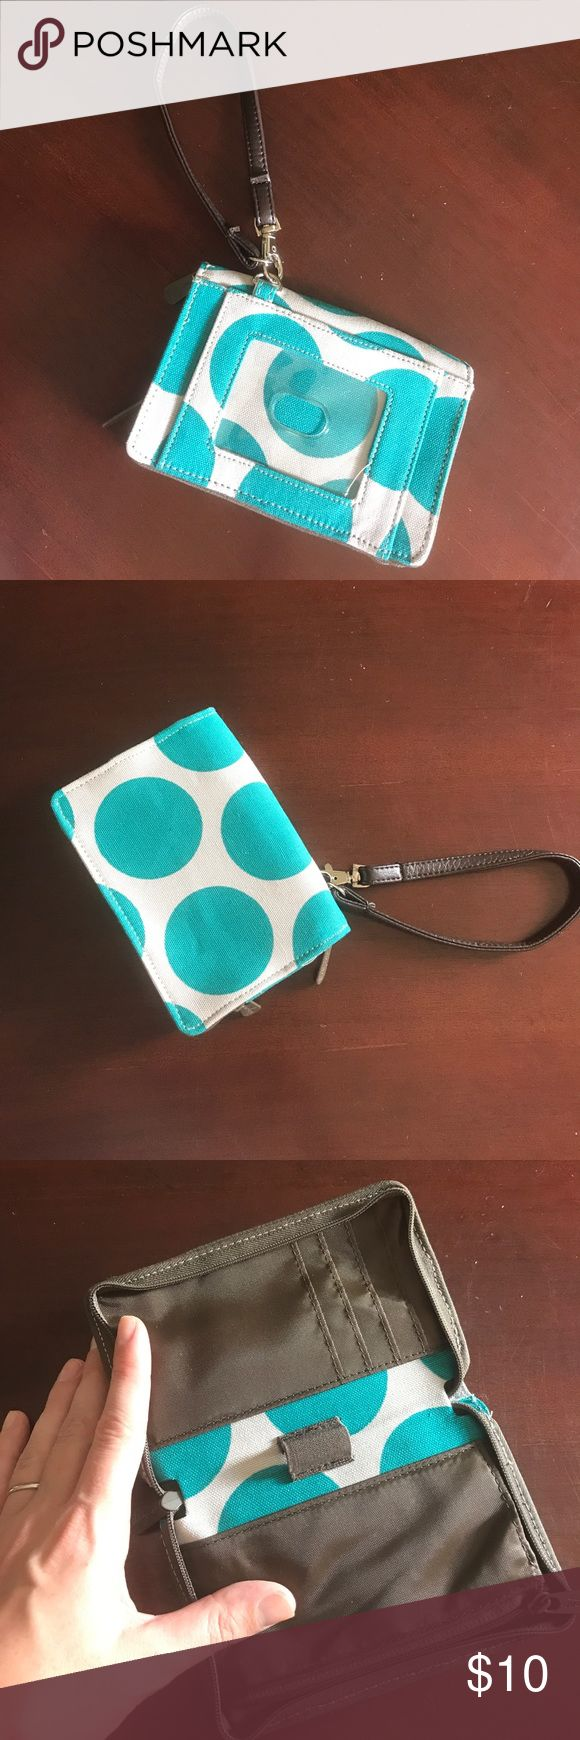 Thirty One wallet Thirty One Wallet. White & Teal. Never been used. Like new. Thirty One Bags Wallets